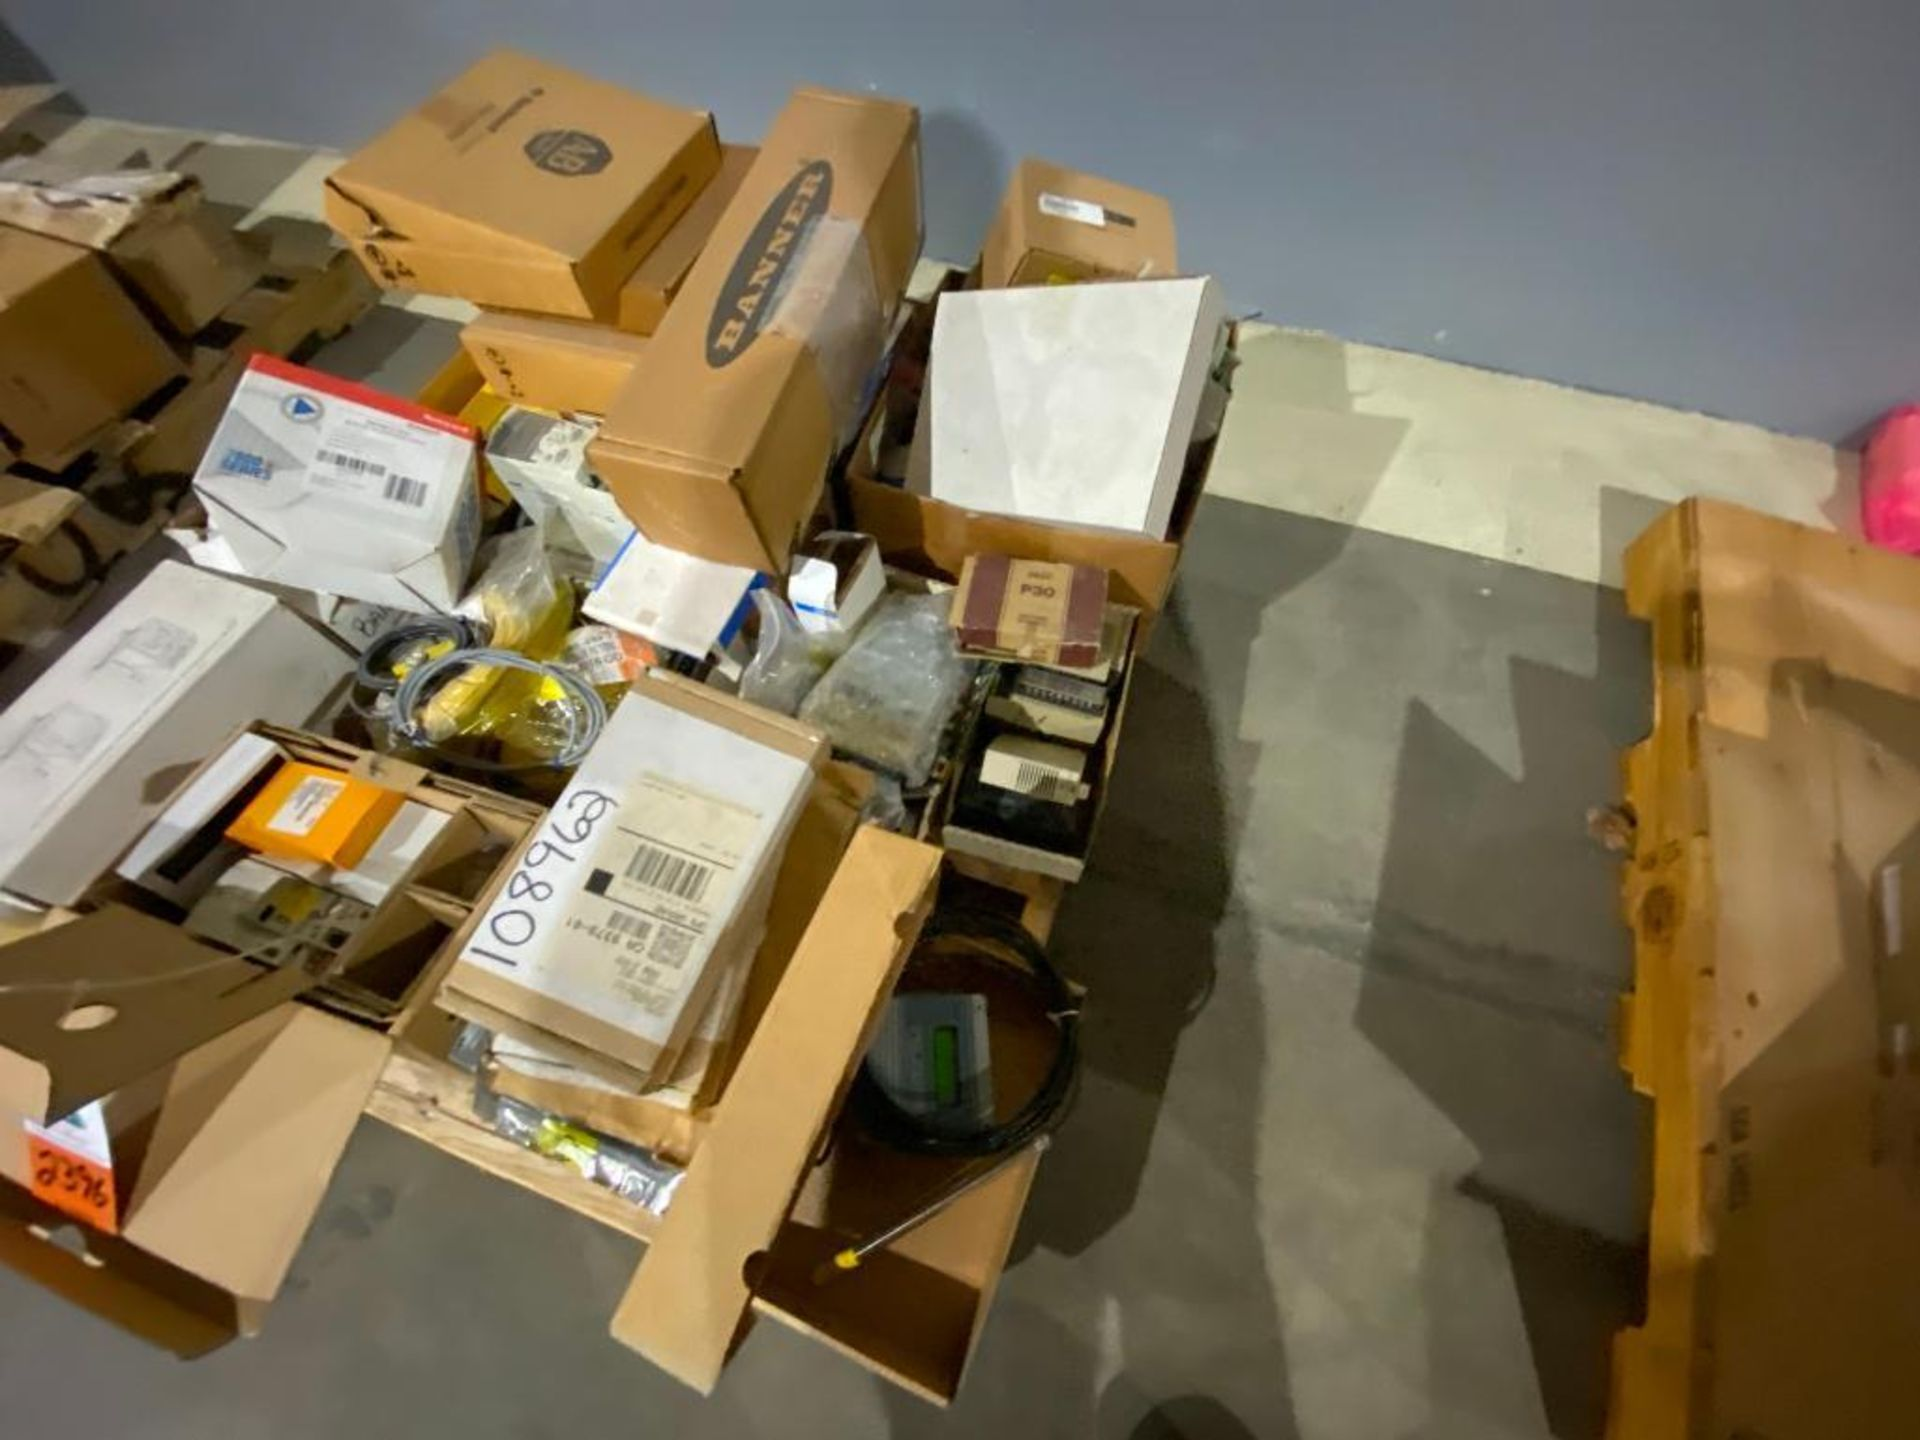 pallet of ABB parts, controllers, cabinets, and control boards - Image 2 of 8